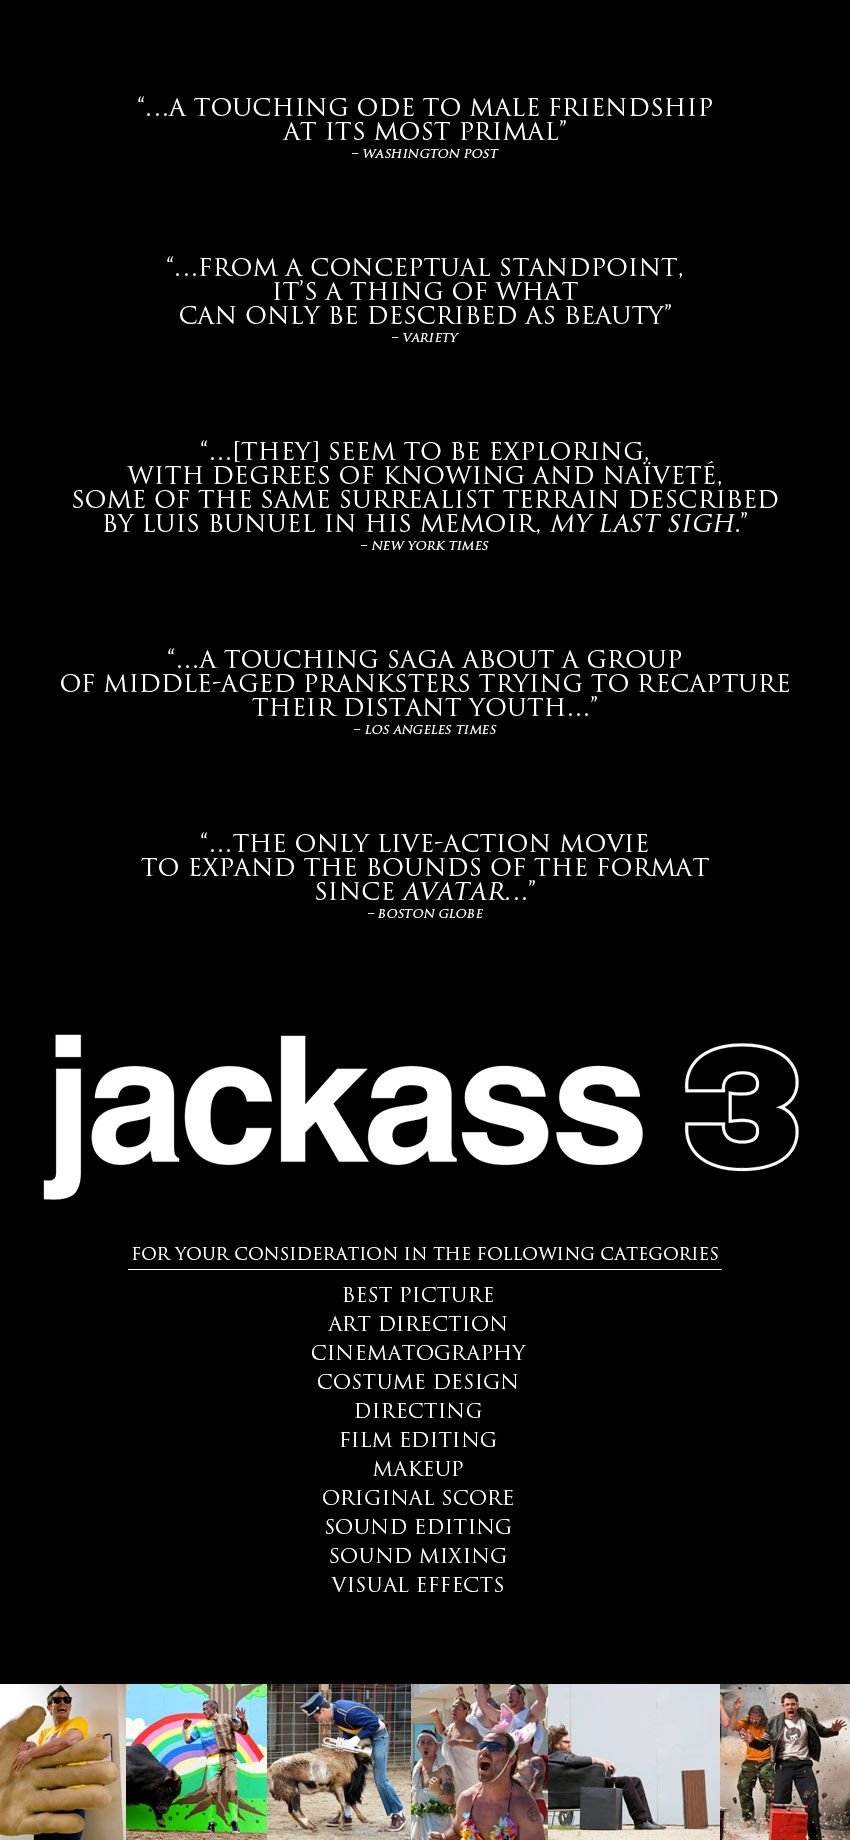 jackass-3-for-your-consideration-ad